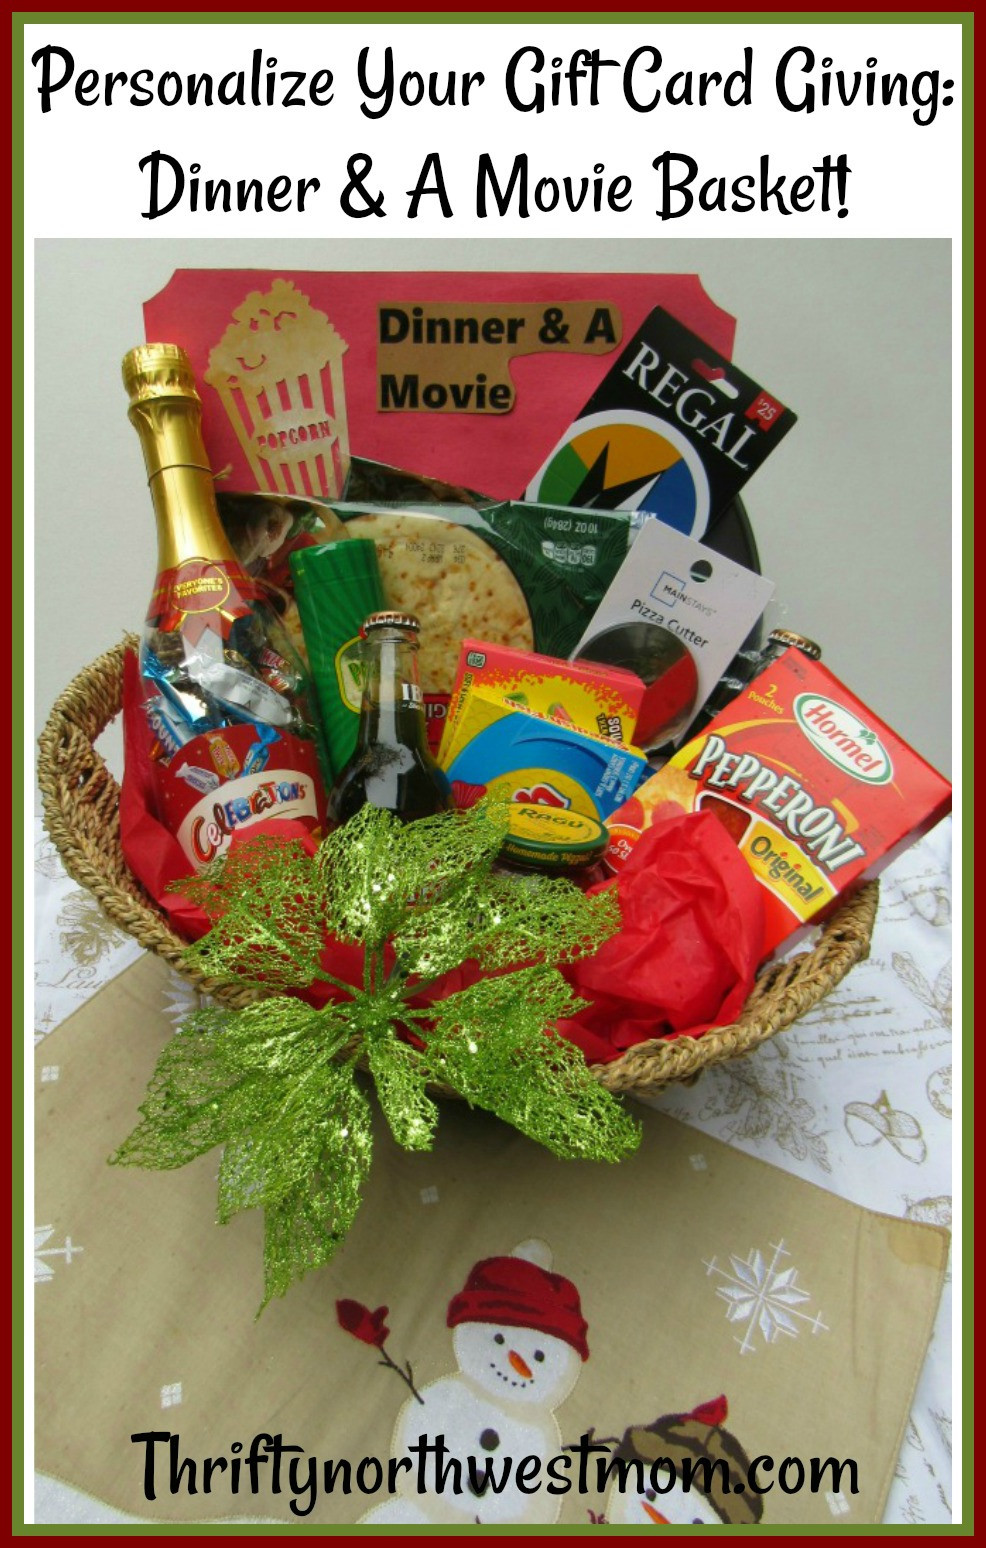 Movie Gift Basket Ideas  Dinner & A Movie Gift Basket Idea How to Personalize